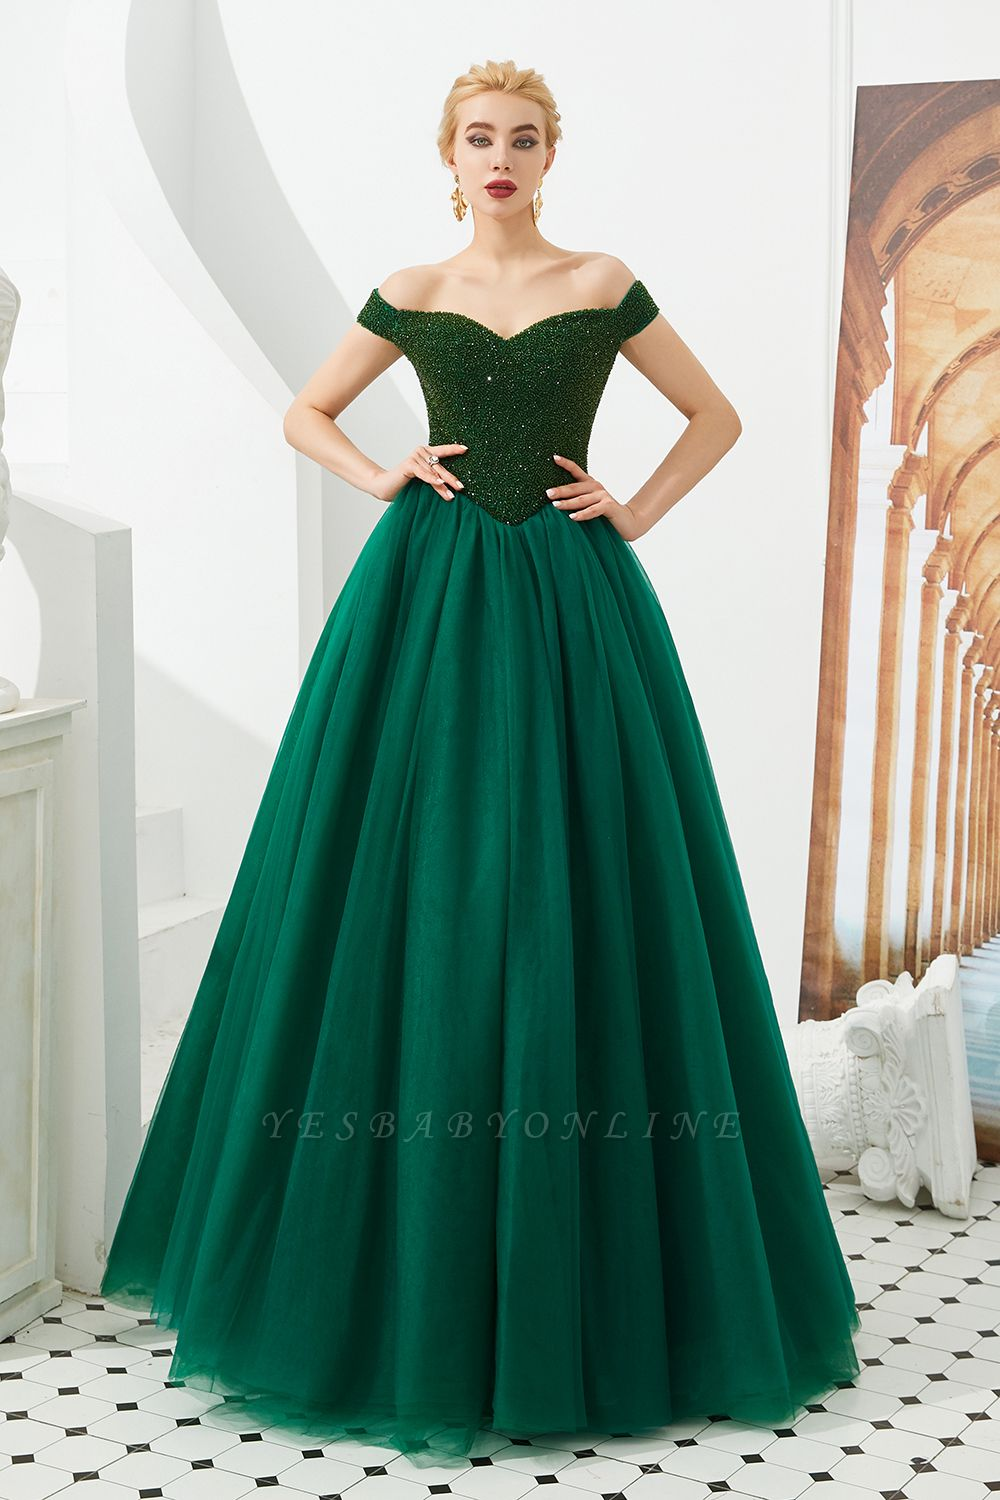 Off the Shoulder Sweetheart Jade A-line Long Prom Dresses | Elegant Evening Dresses Cheap